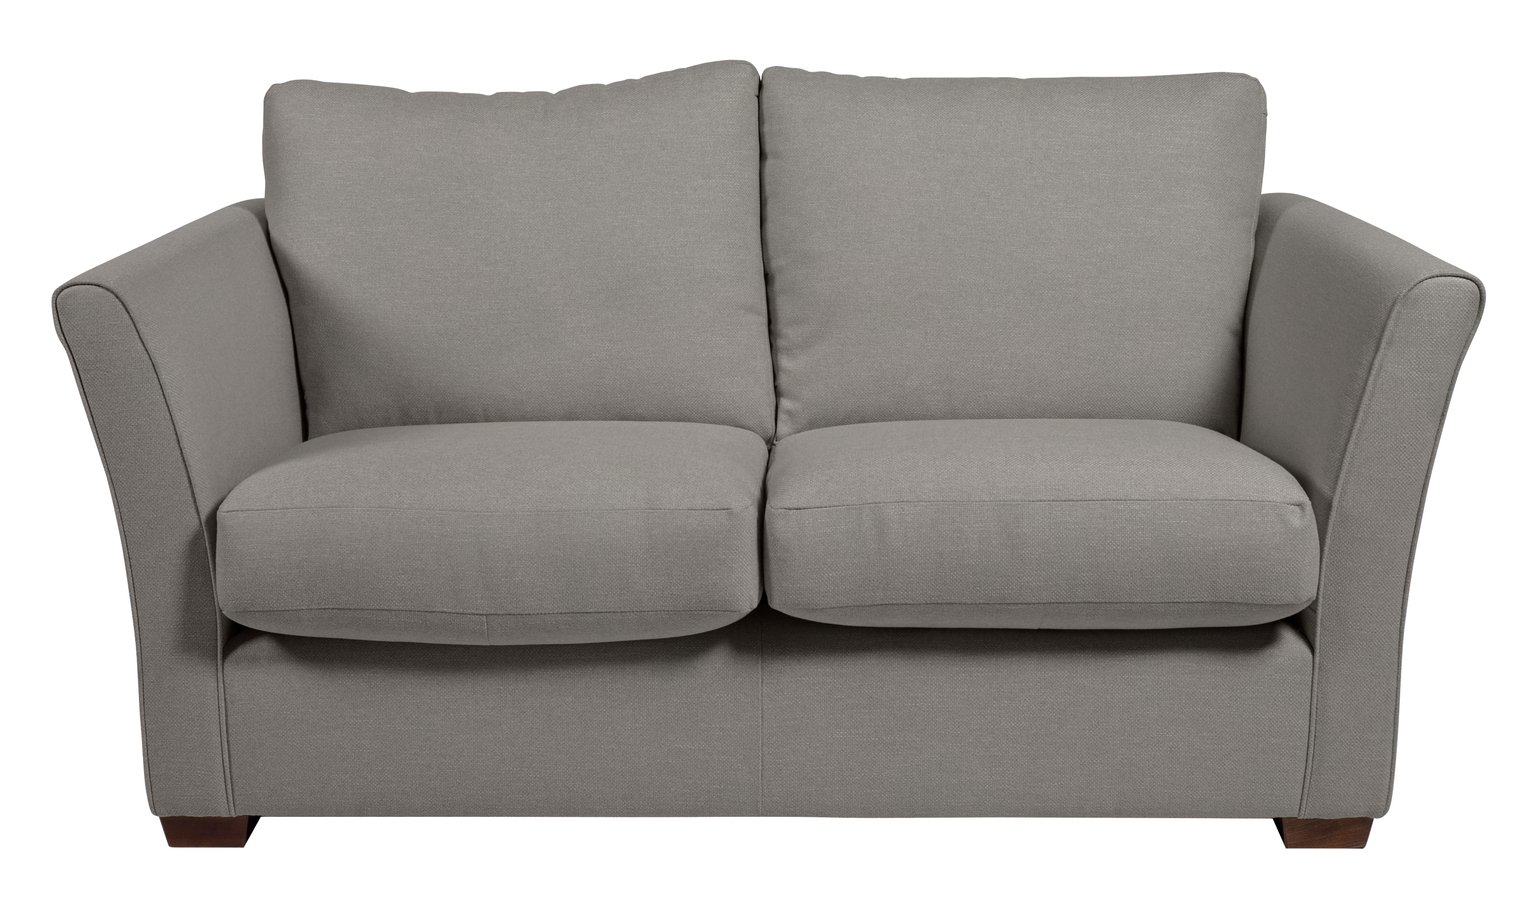 Argos Home Dawson 2 Seater Fabric Sofa - Grey